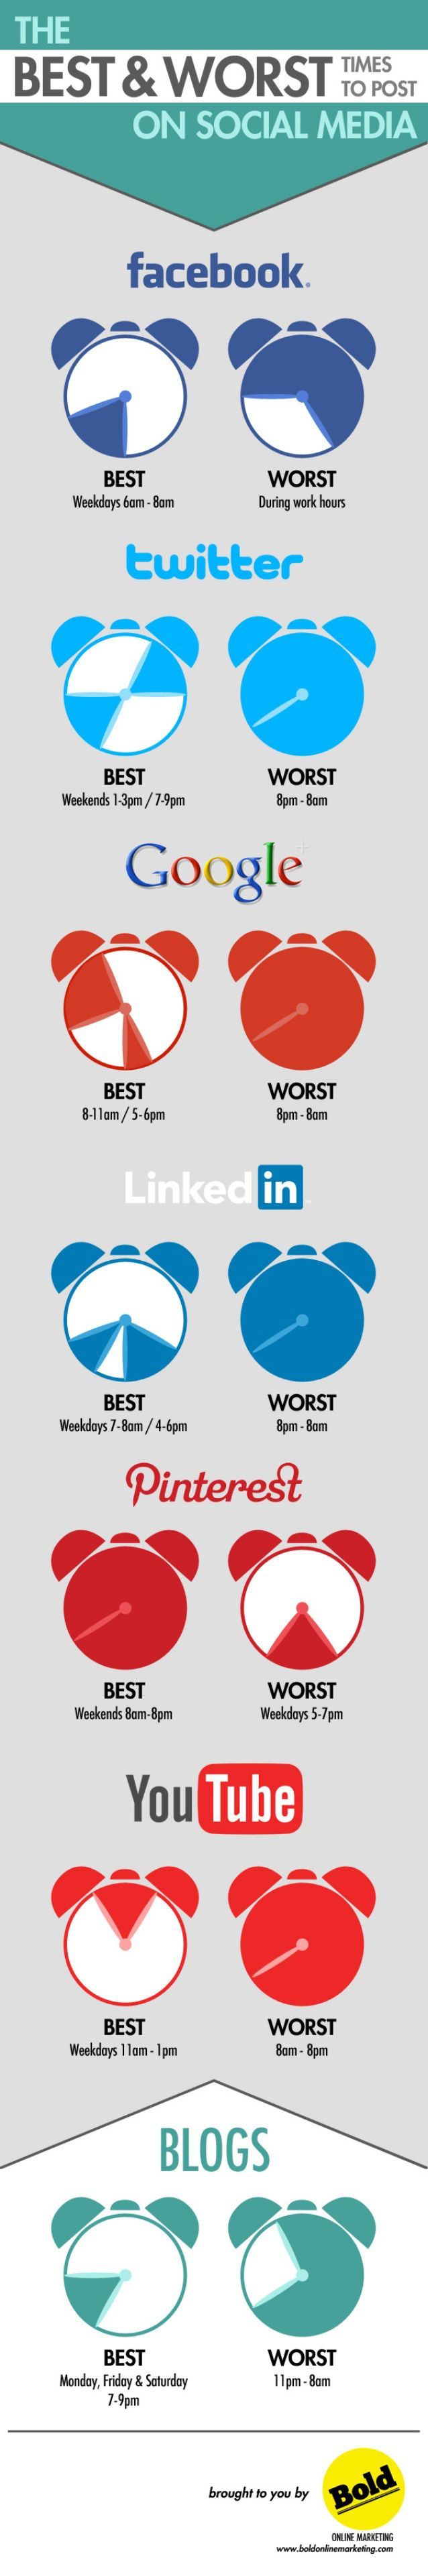 The best & worst times to post on Social Media #infographic